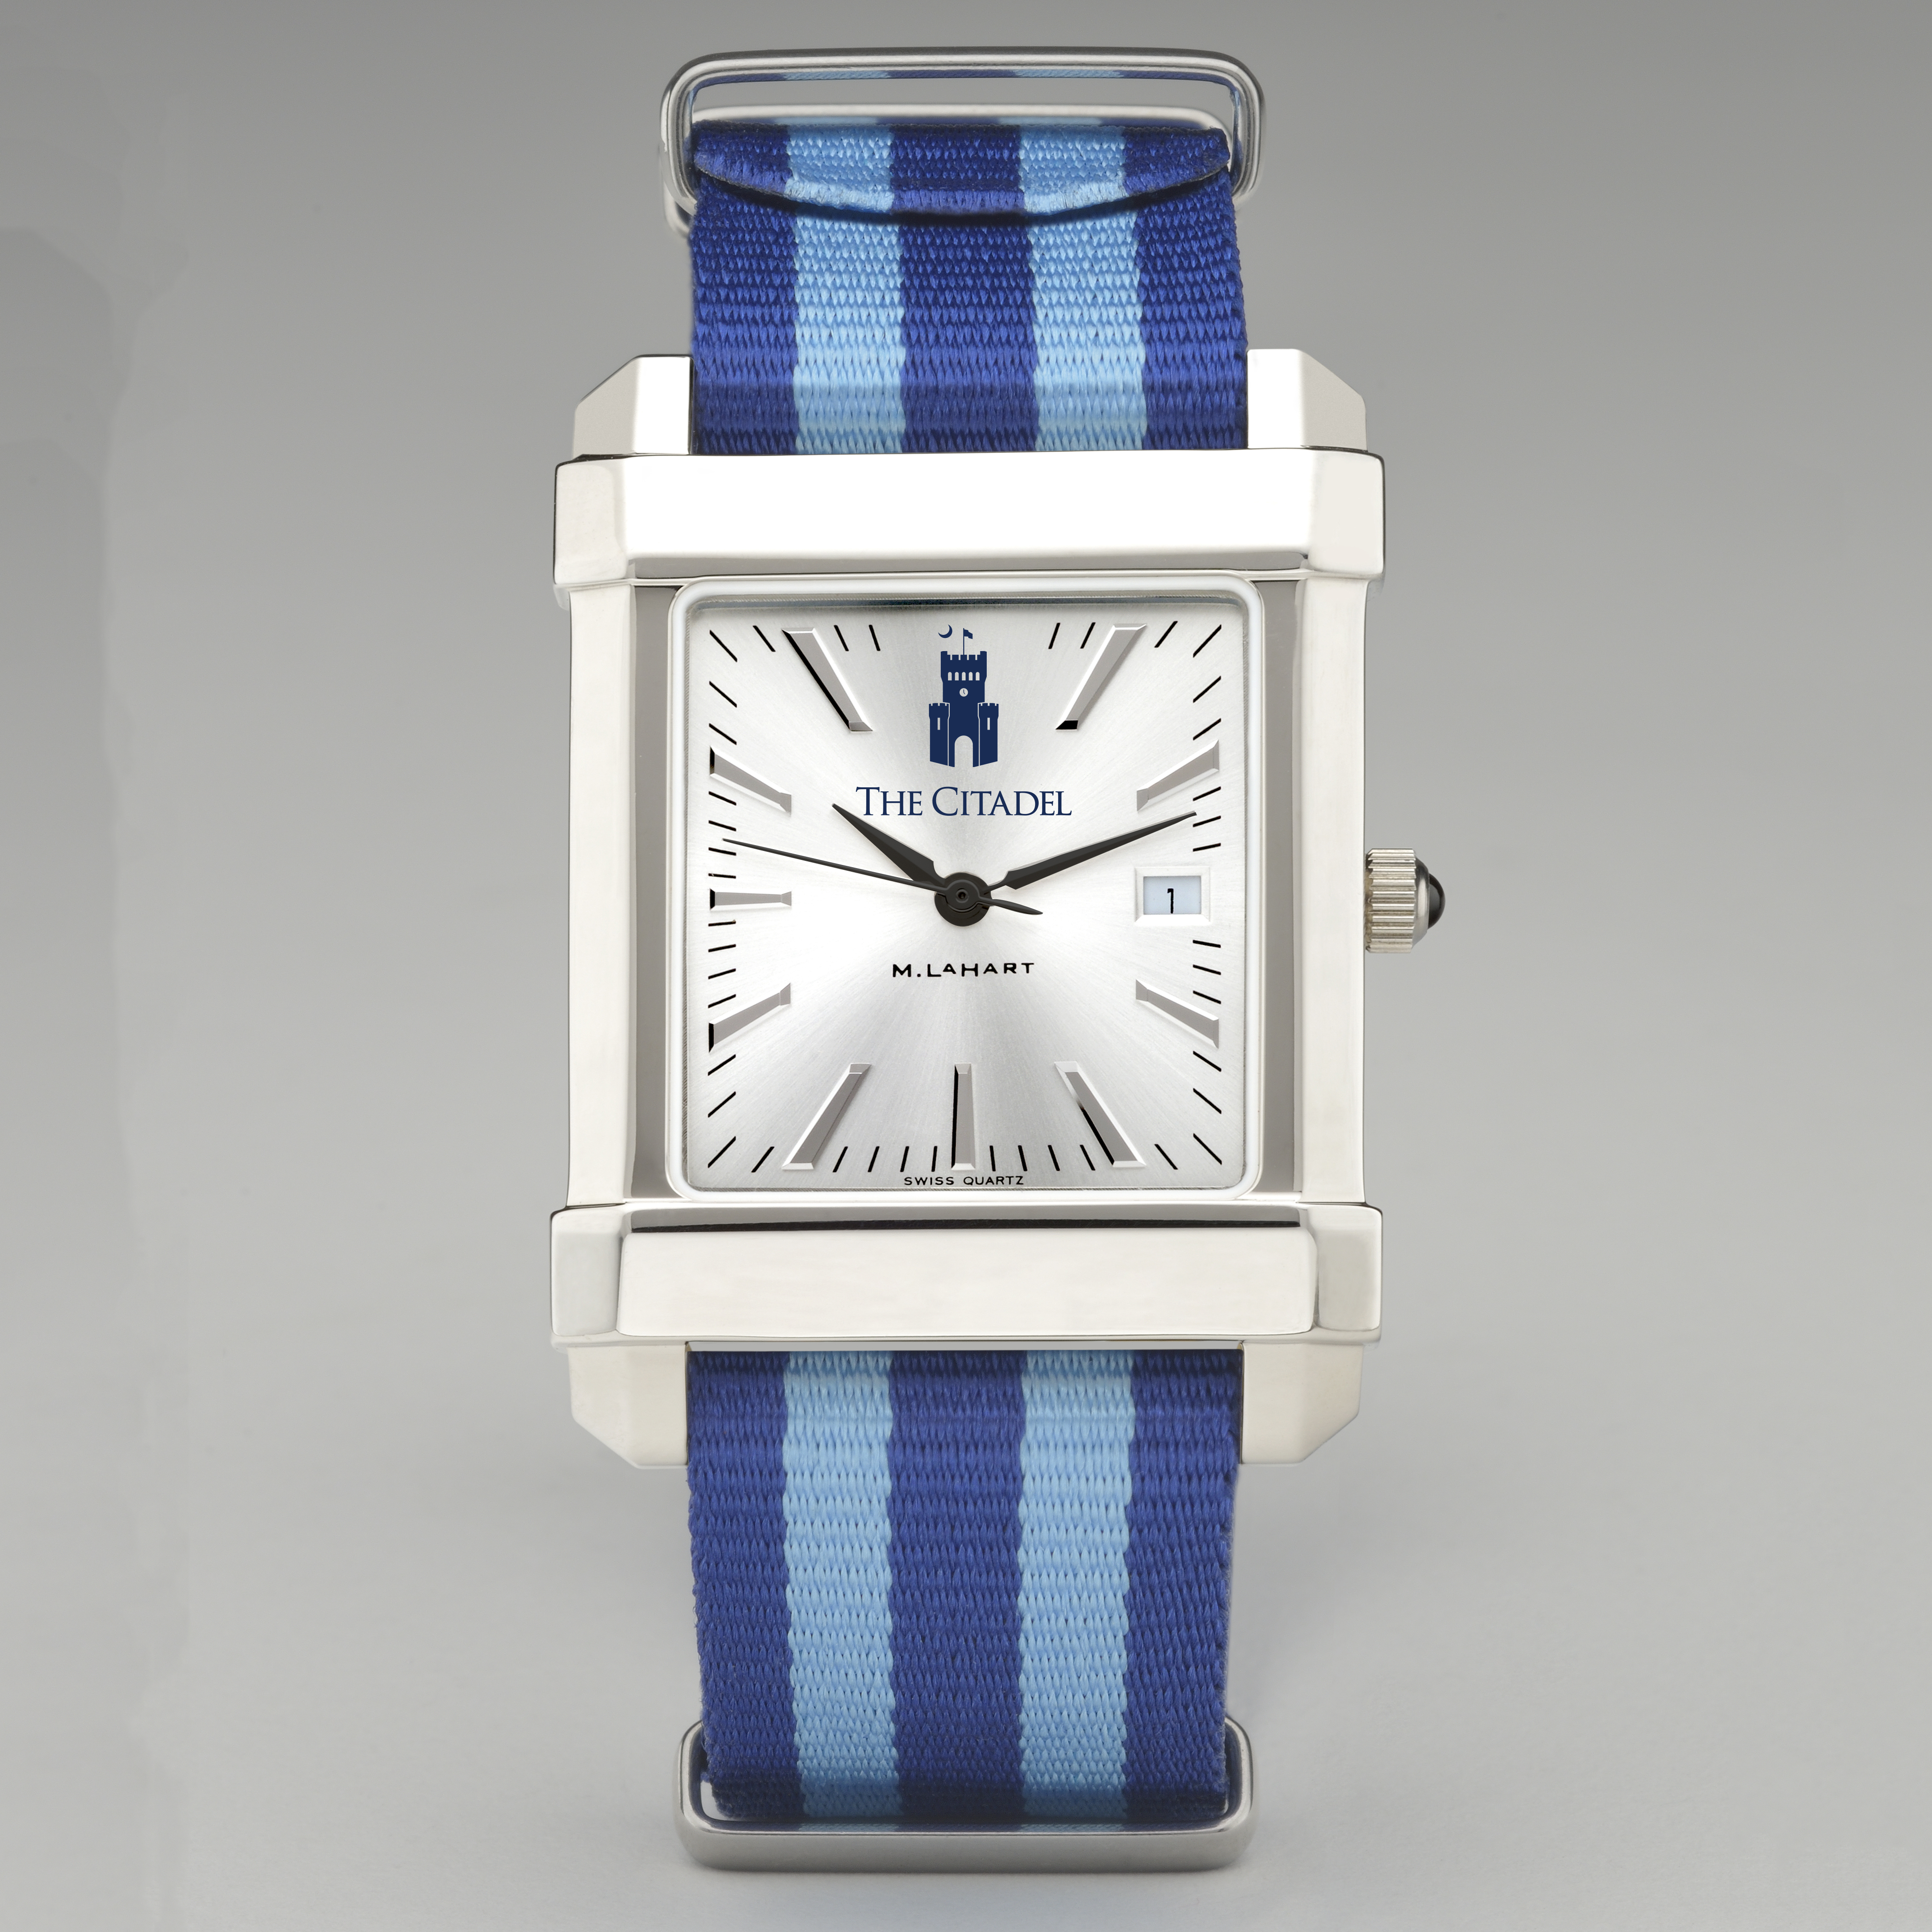 Citadel Collegiate Watch with NATO Strap for Men - Image 2